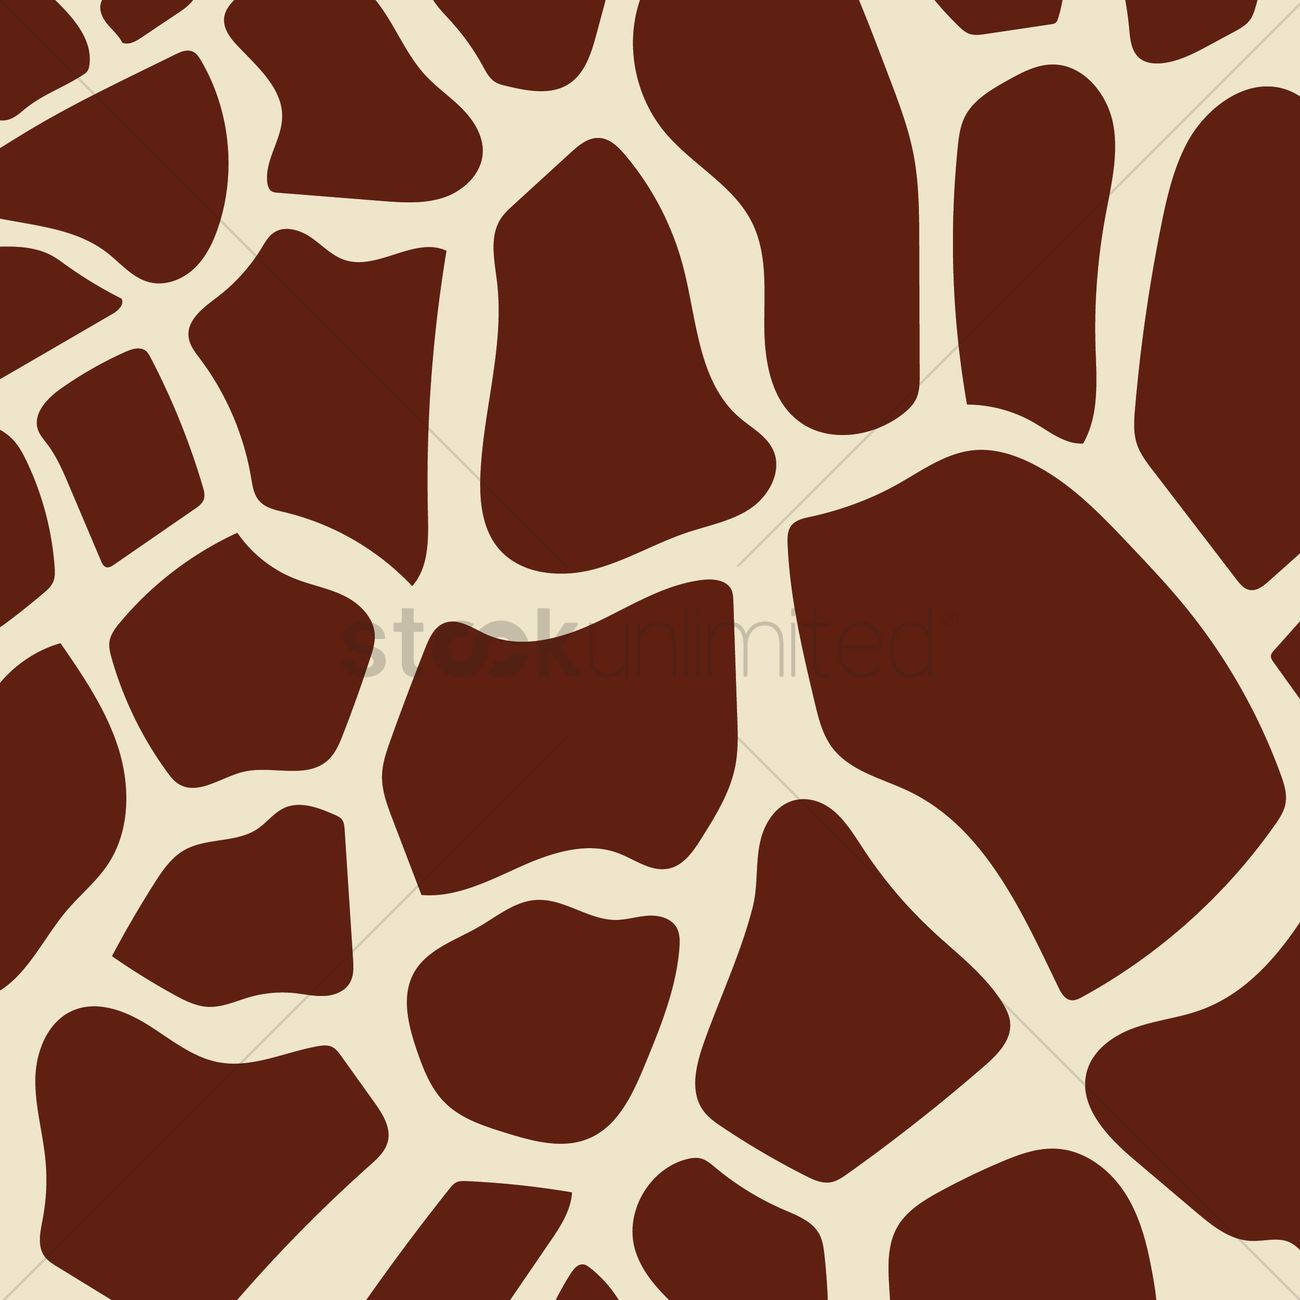 Real giraffe print background